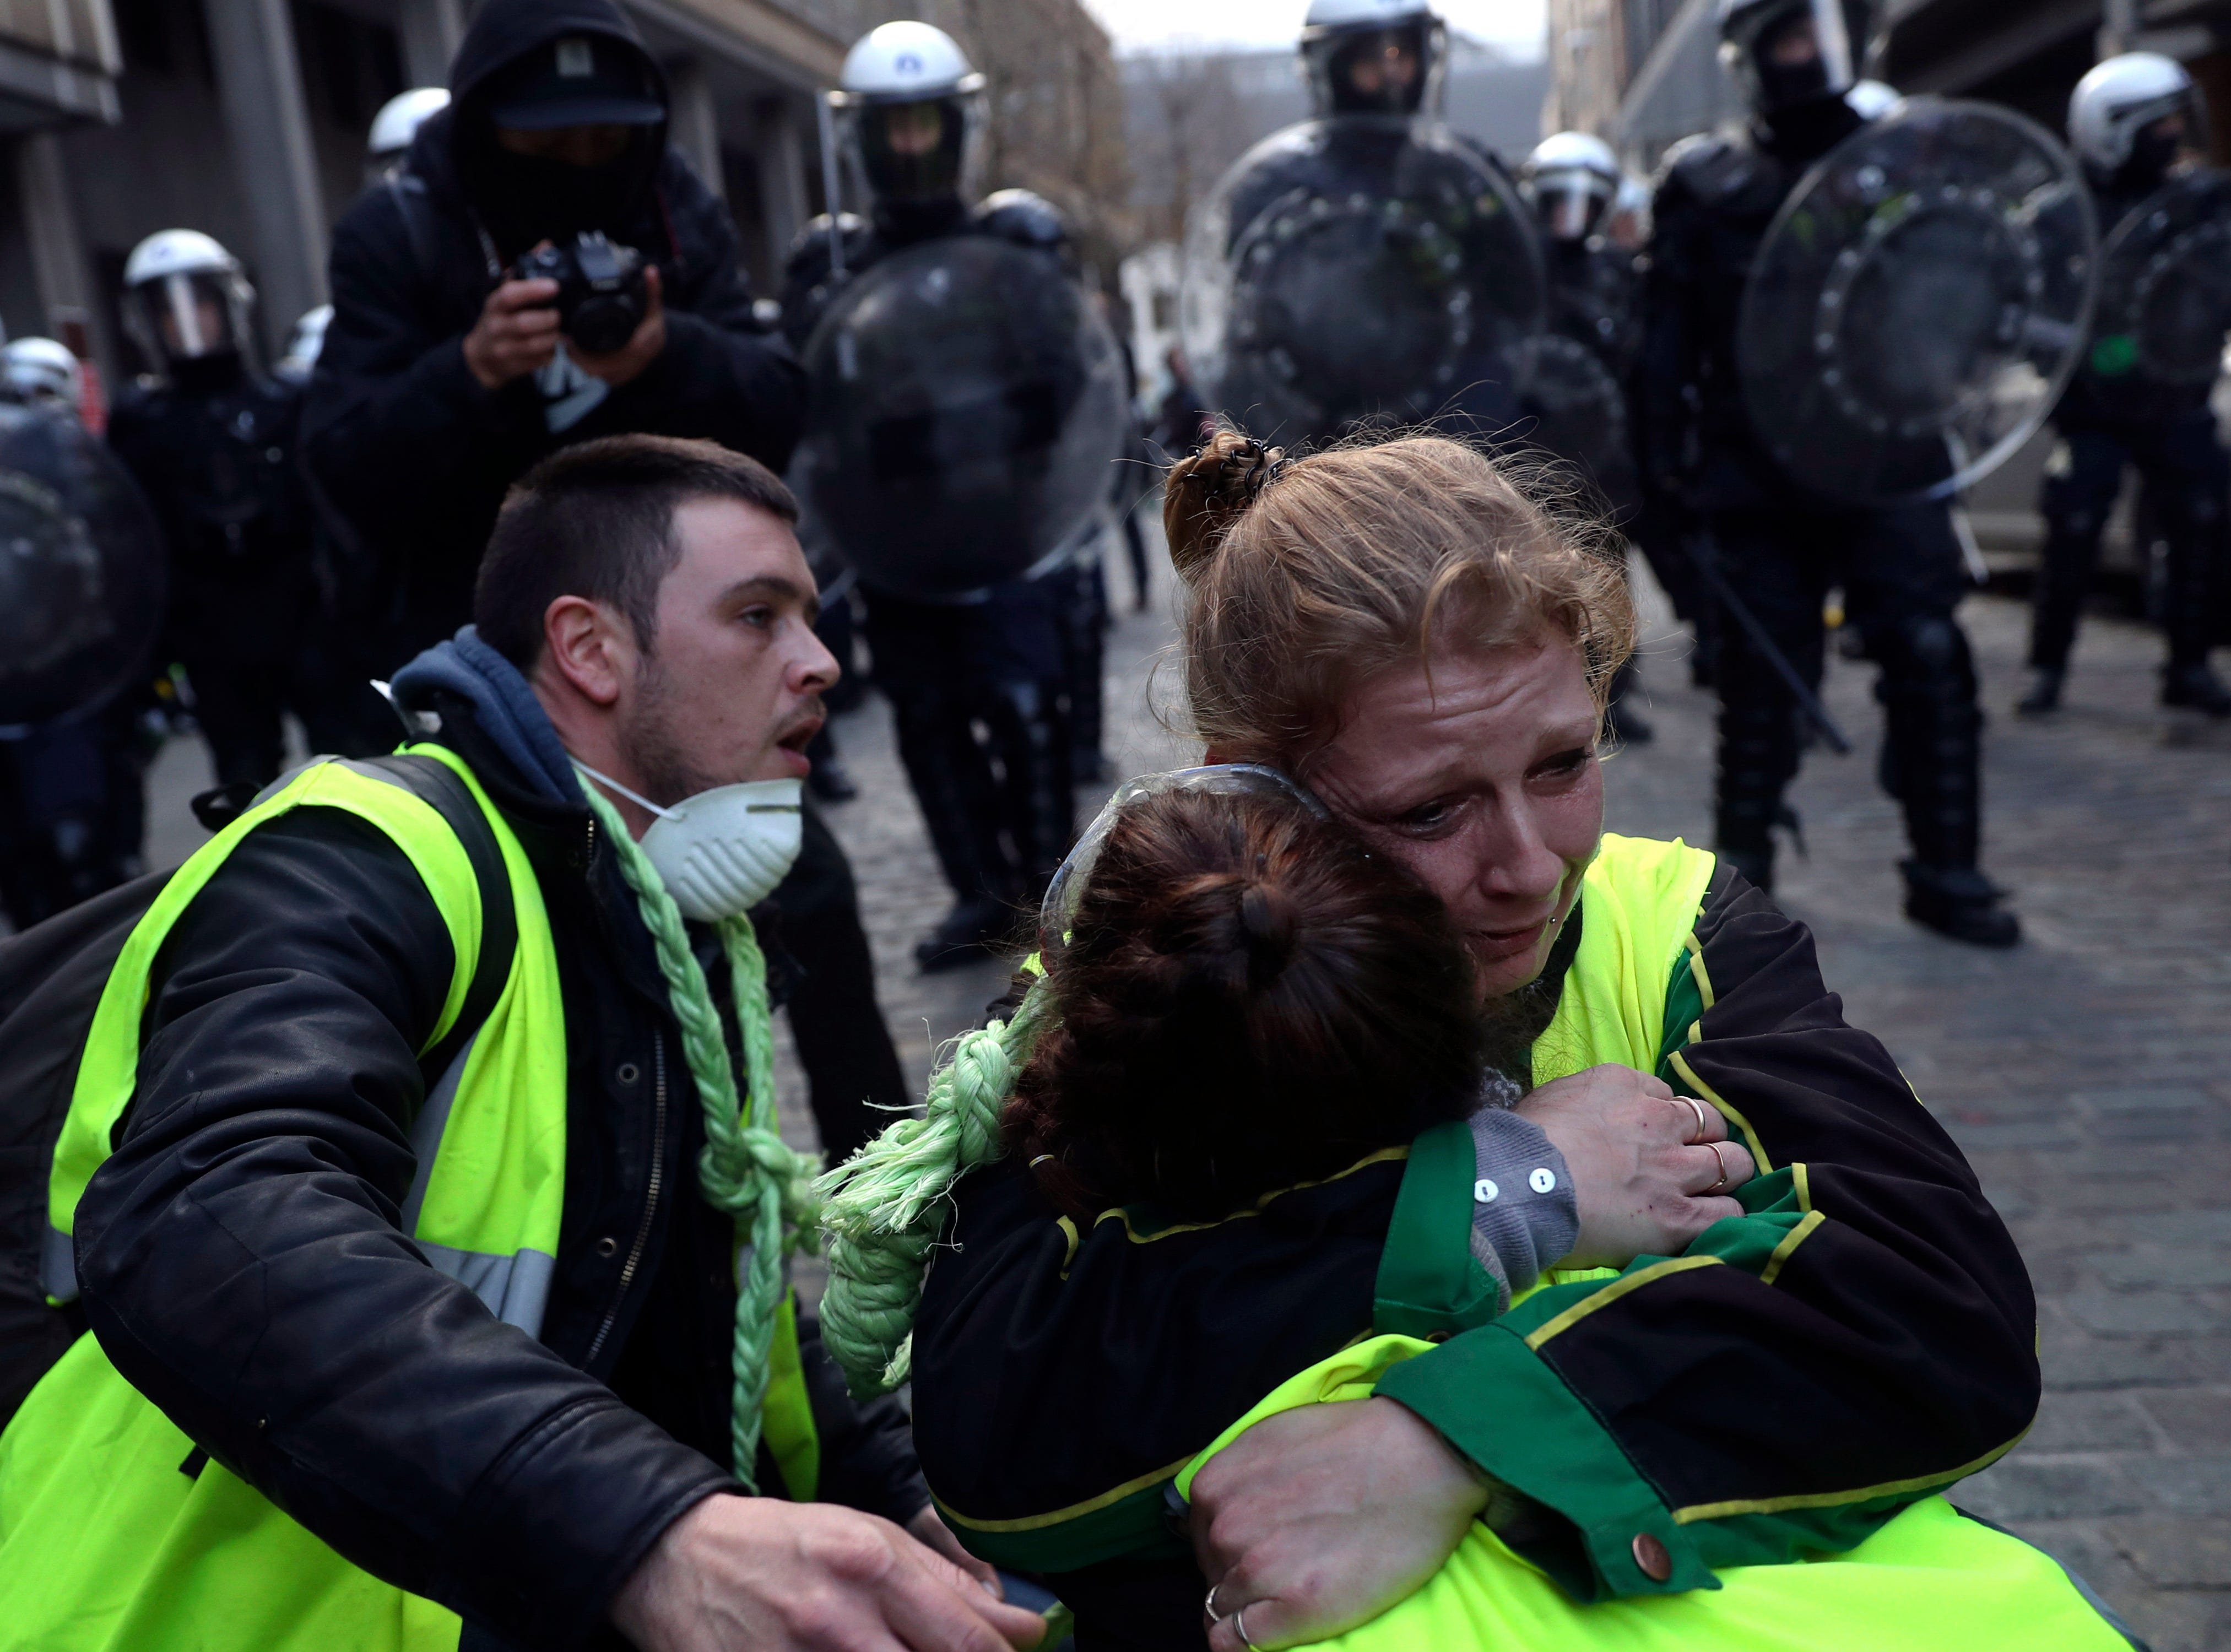 Protestors hug each other in front of a line of anti riot policemen during a protest of the yellow jackets in Brussels, Friday, Nov. 30, 2018. The demonstrators are protesting against rising fuel prices.